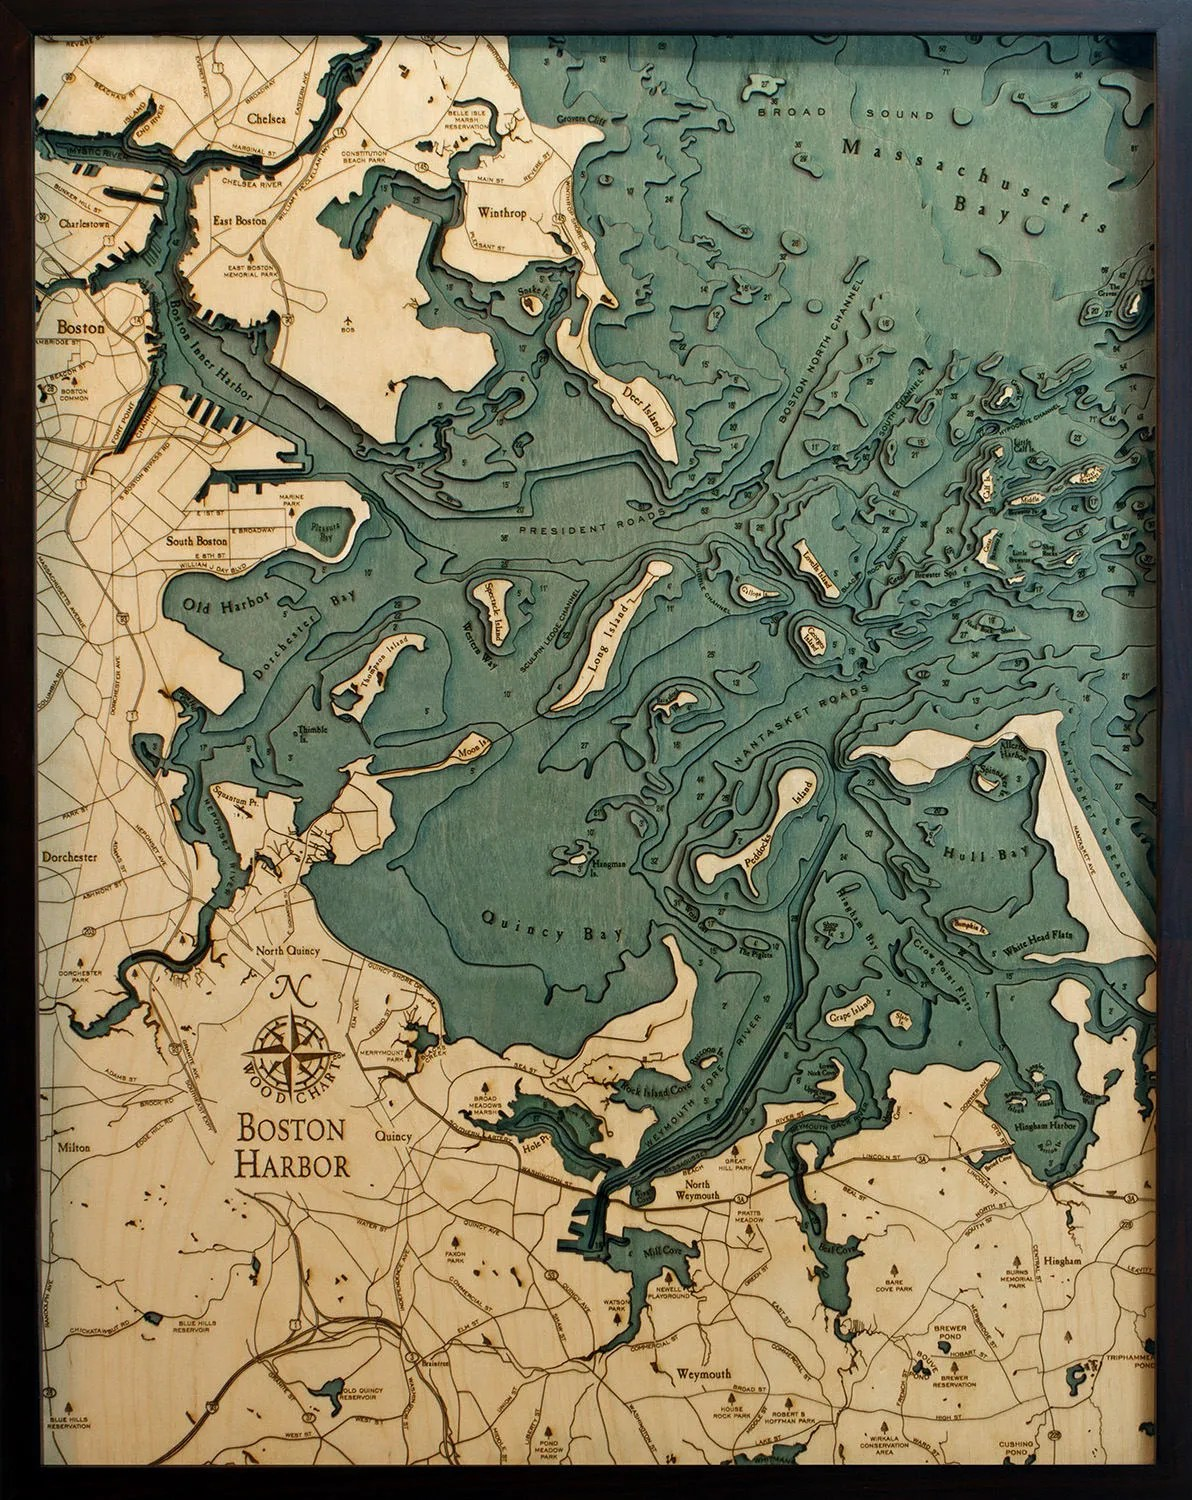 Boston Harbor Wood Carved Topographic Depth Chart / Map Etsy